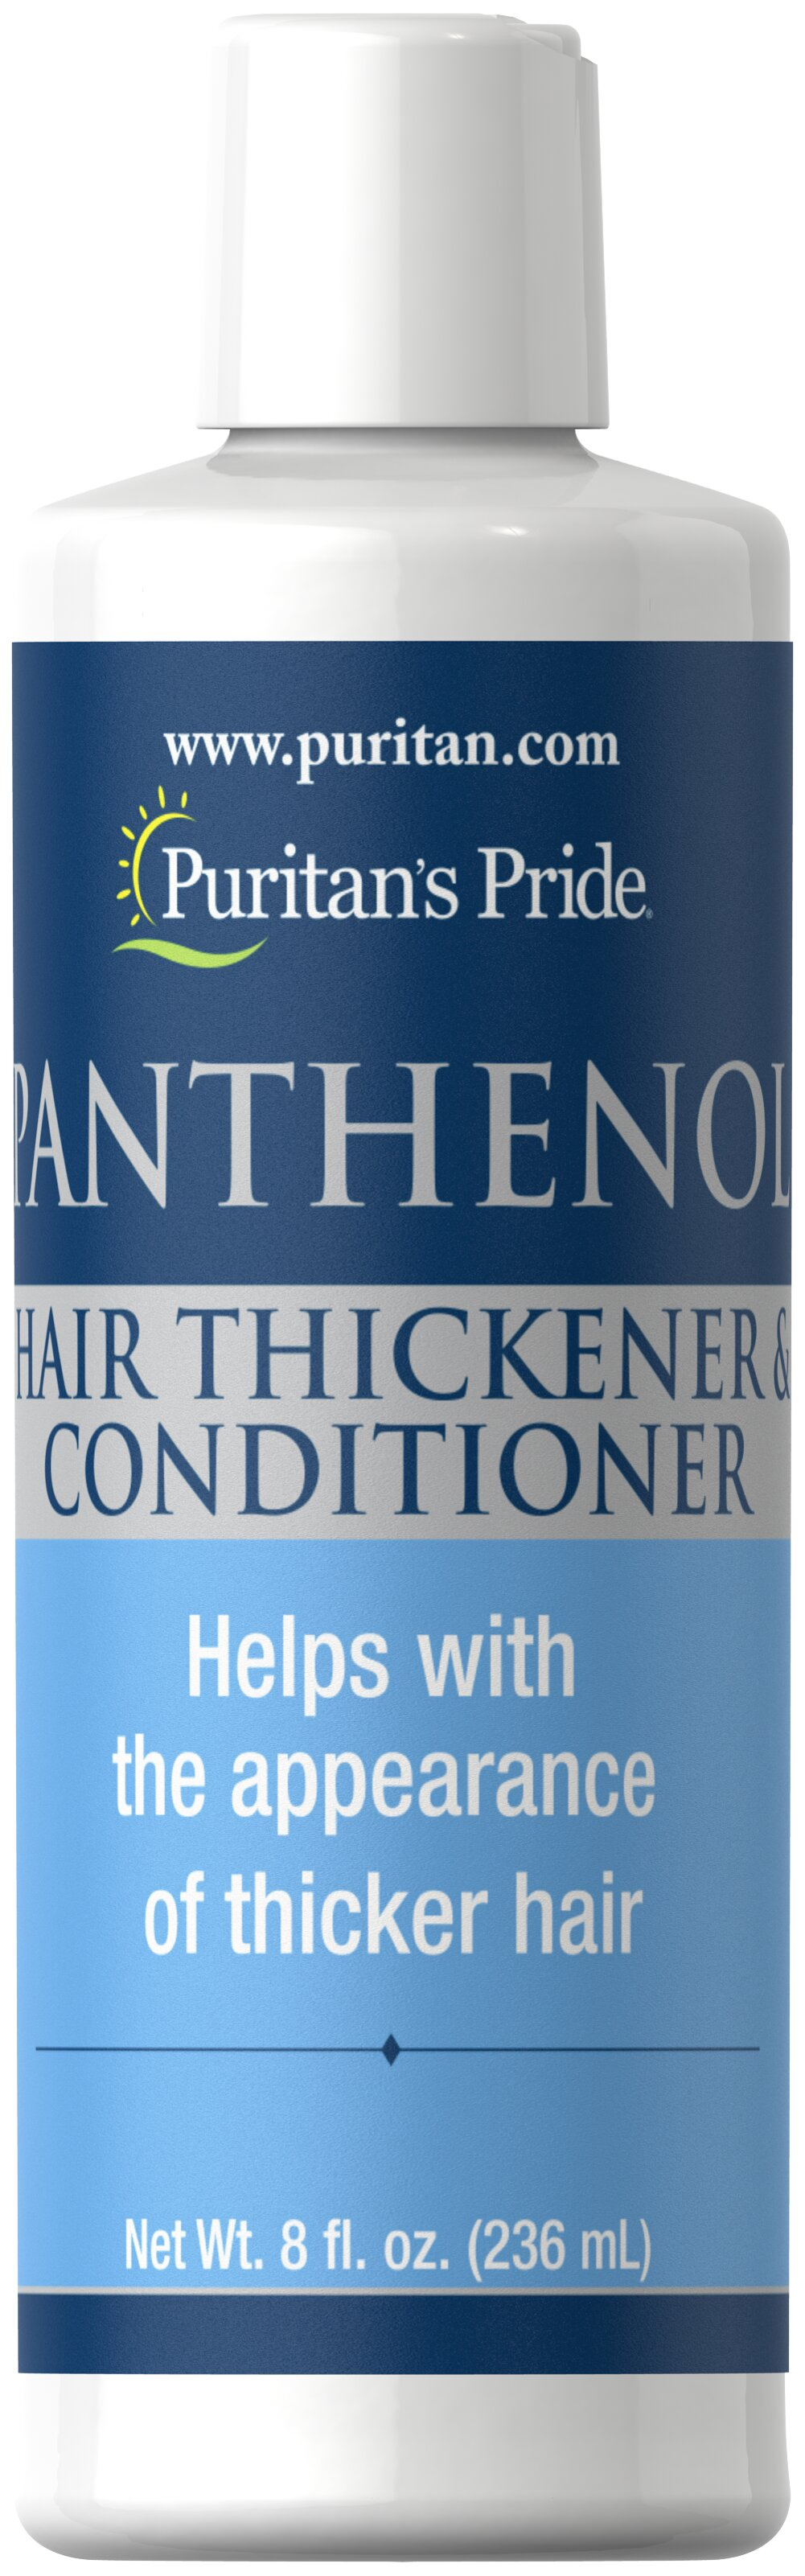 Panthenol Hair Thickener & Conditioner <p>Add New Body to Lifeless Hair</p><p>Pamper your hair with Puritan's Pride Hair Thickener & Conditioner. After continuous use, your hair will have more body, feel stronger, and look healthier. Panthenol revitalizes your hair as it penetrates each hair shaft, and can make a dramatic difference in the look and feel of your hair.</p> 8 fl oz Conditioner  $10.99